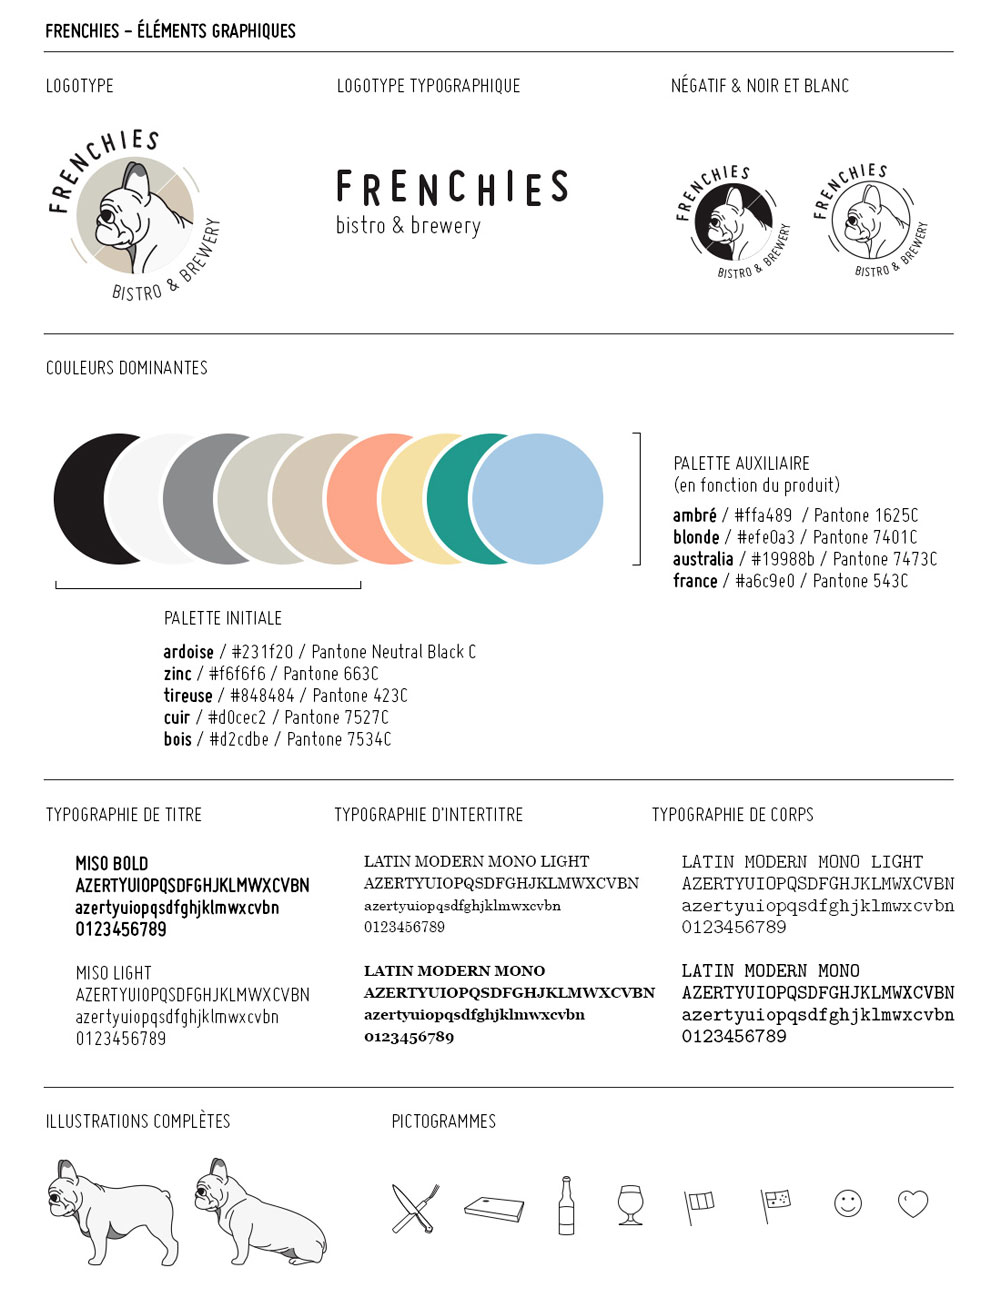 Charte graphique © Frenchies Bistro & Brewery